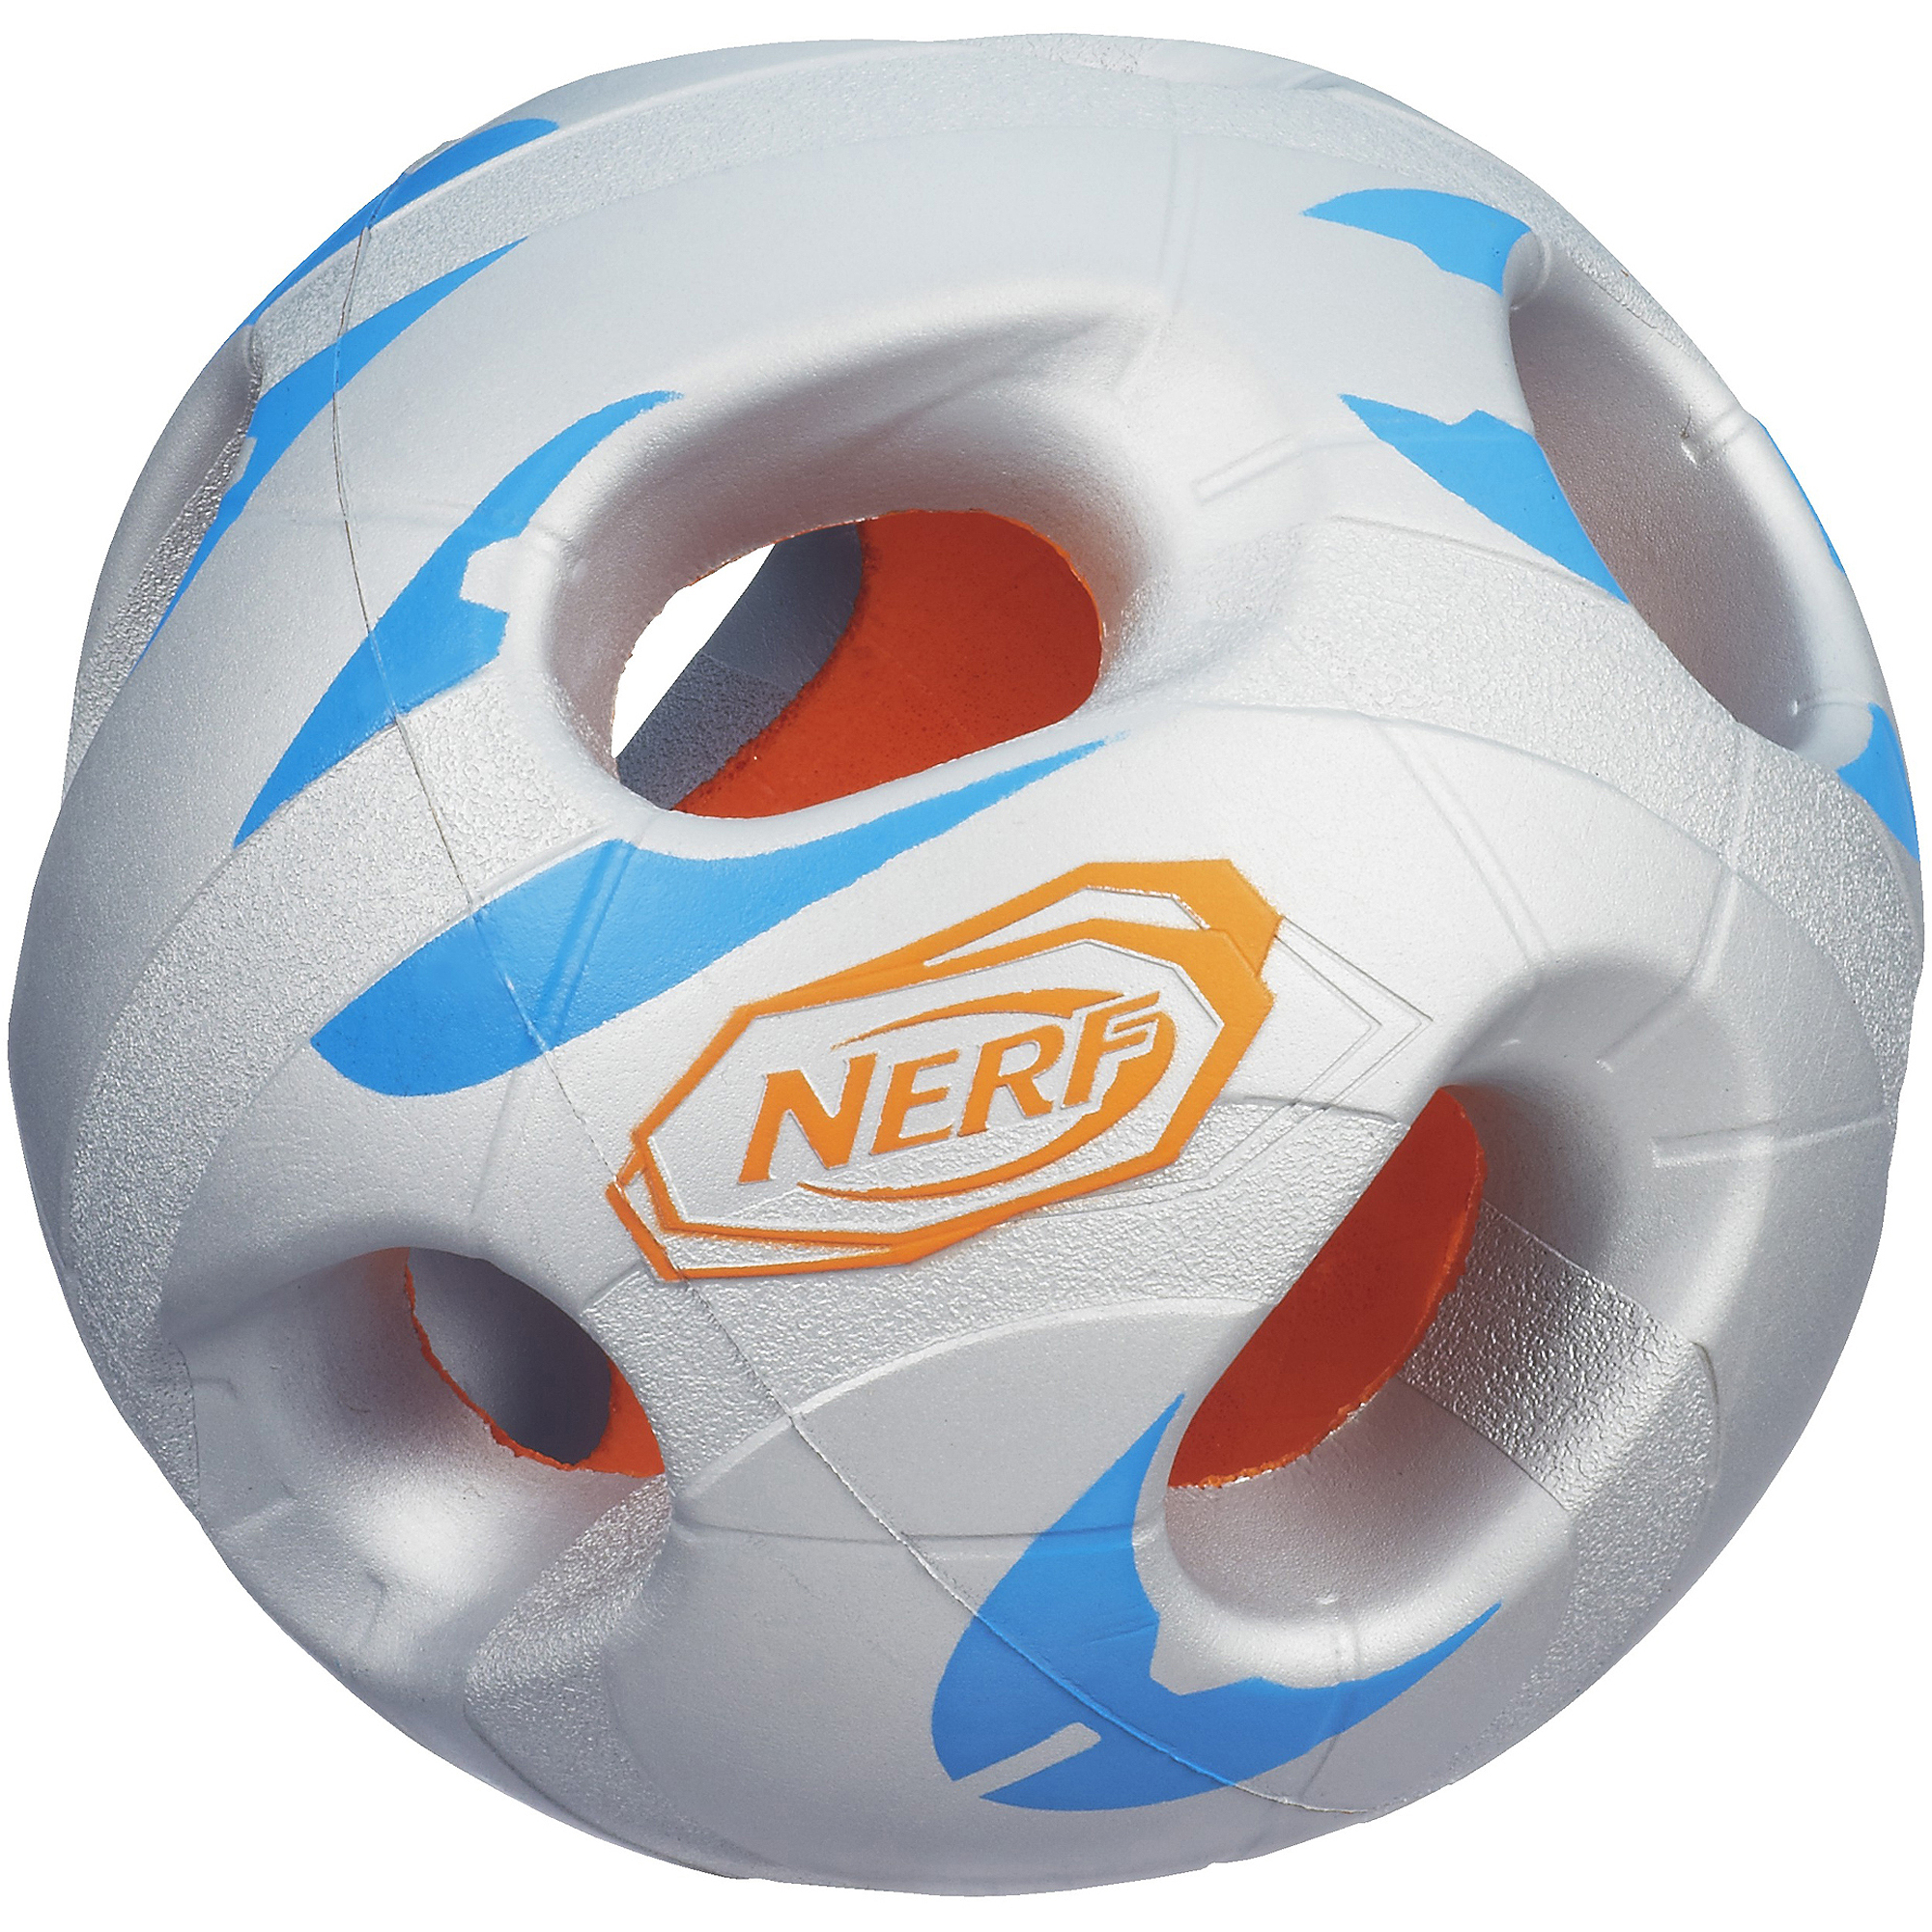 Nerf Sports Bash Ball, Silver